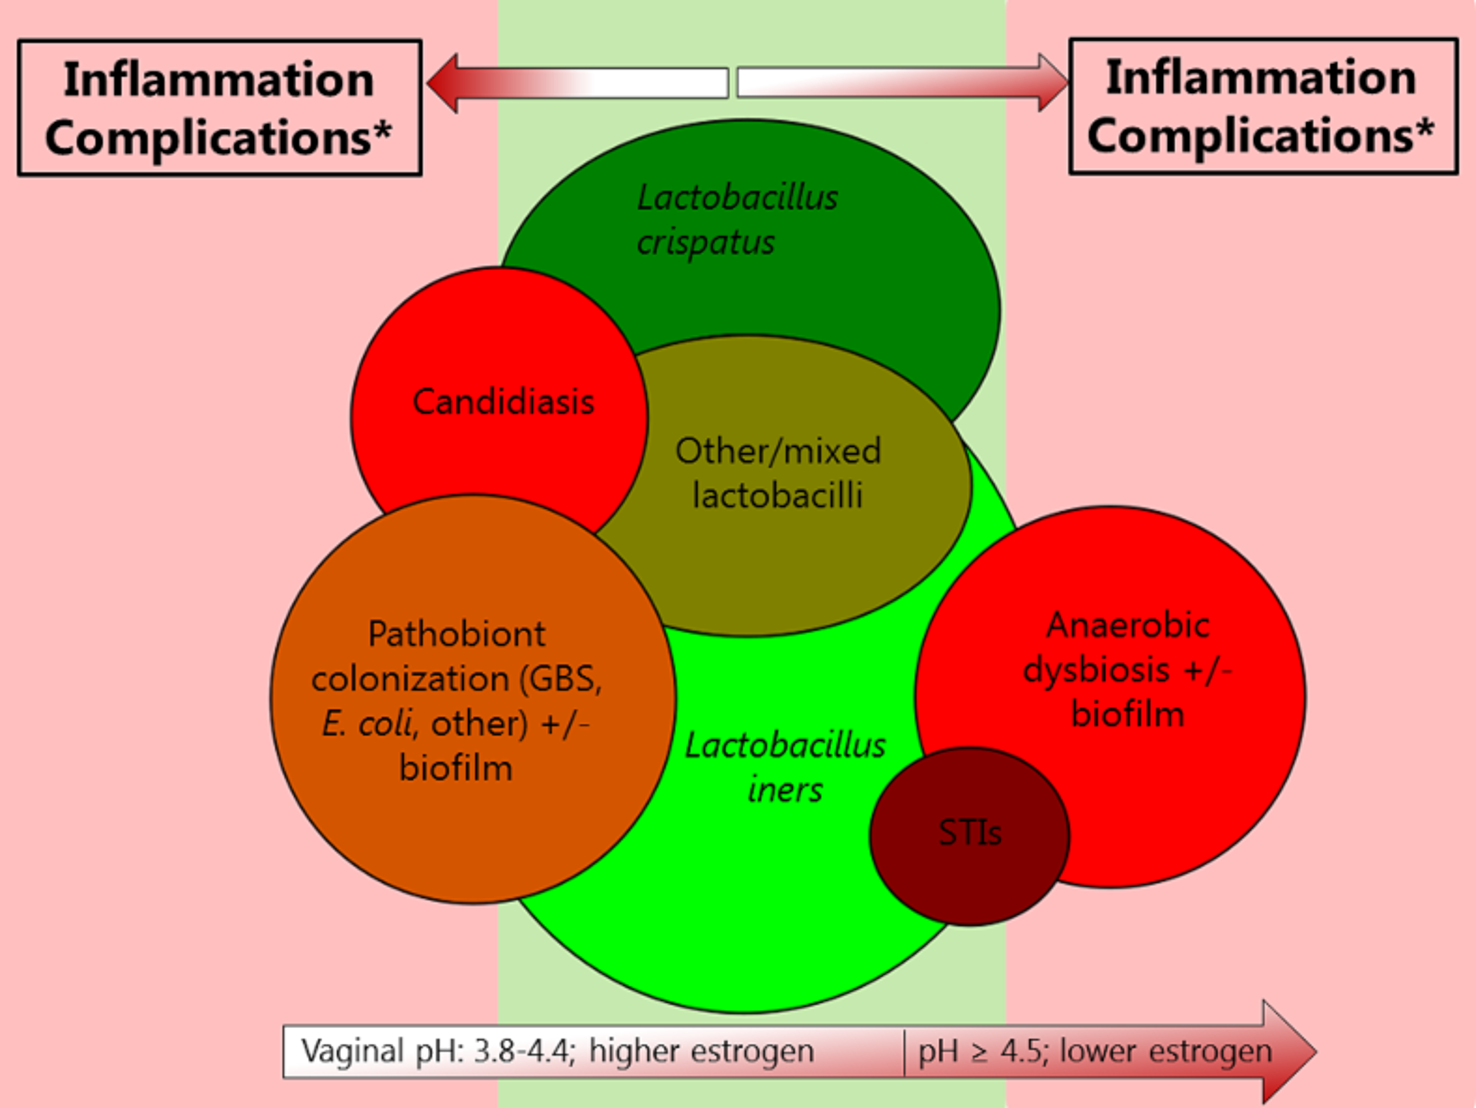 Visualization of interrelationships among various urogenital conditions involving micro-organisms.